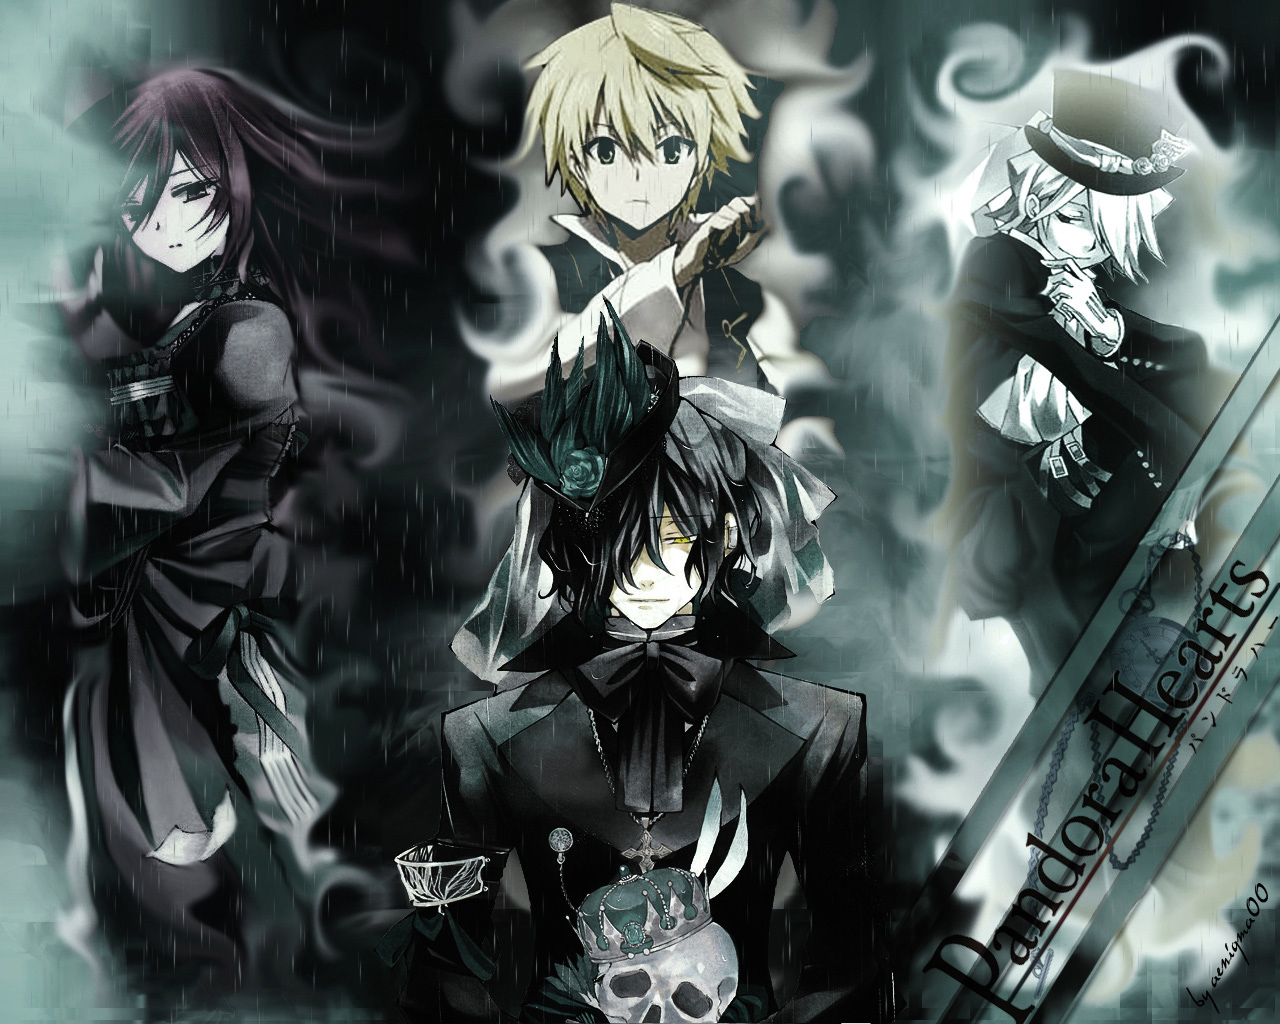 alice_(pandora_hearts) oz_vessalius pandora_hearts vincent_nightray xerxes_break